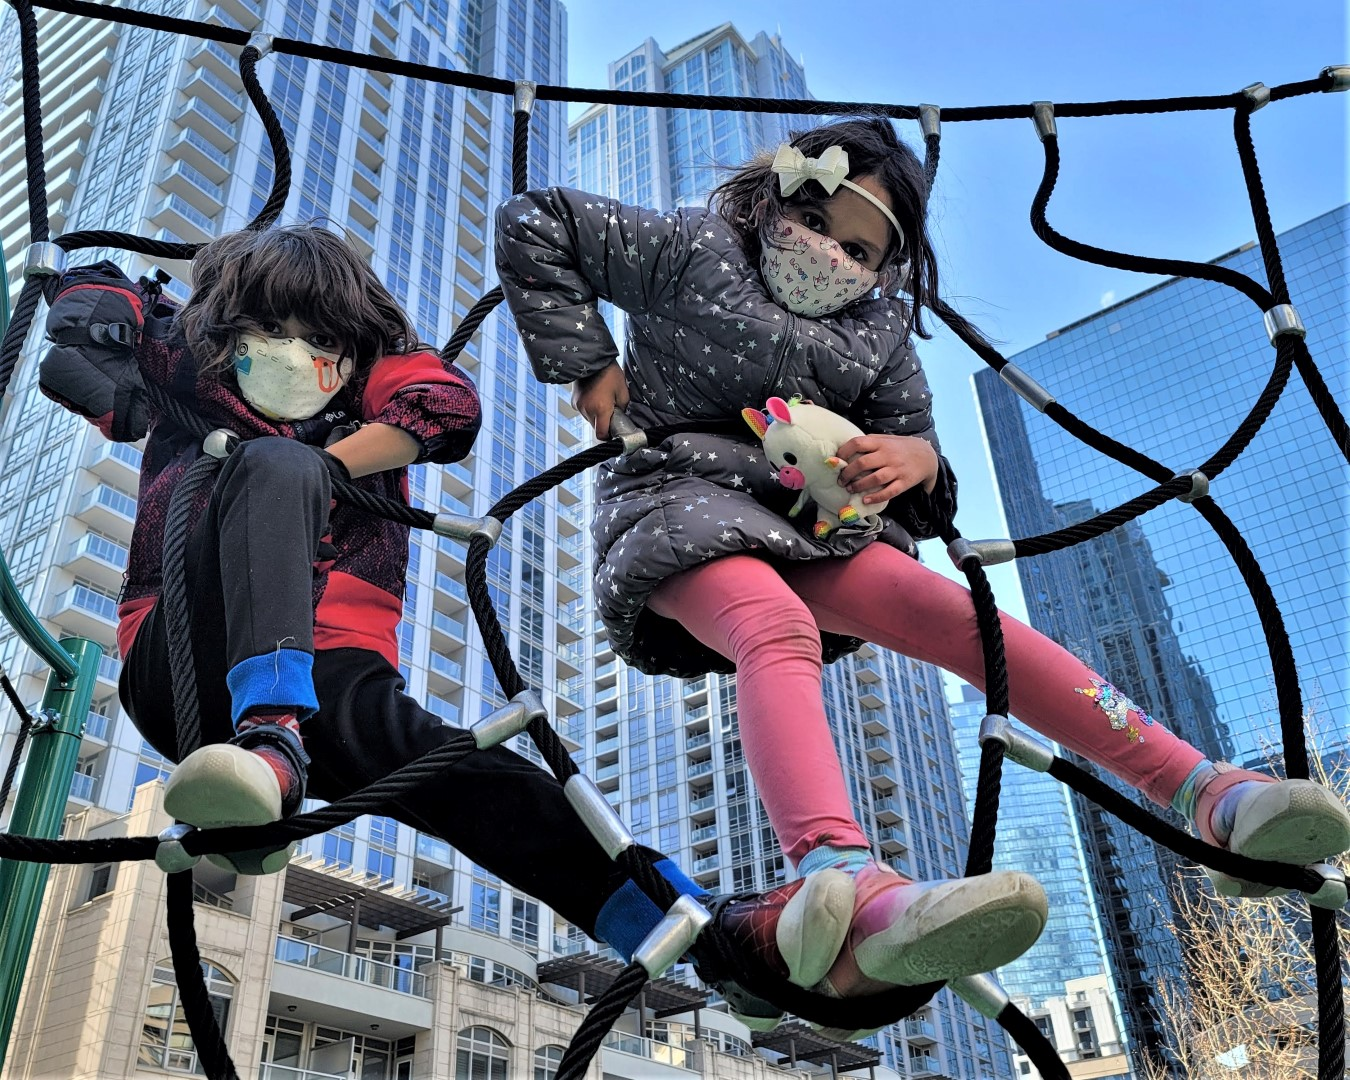 masked kids playing in front of Toronto skyscrapers